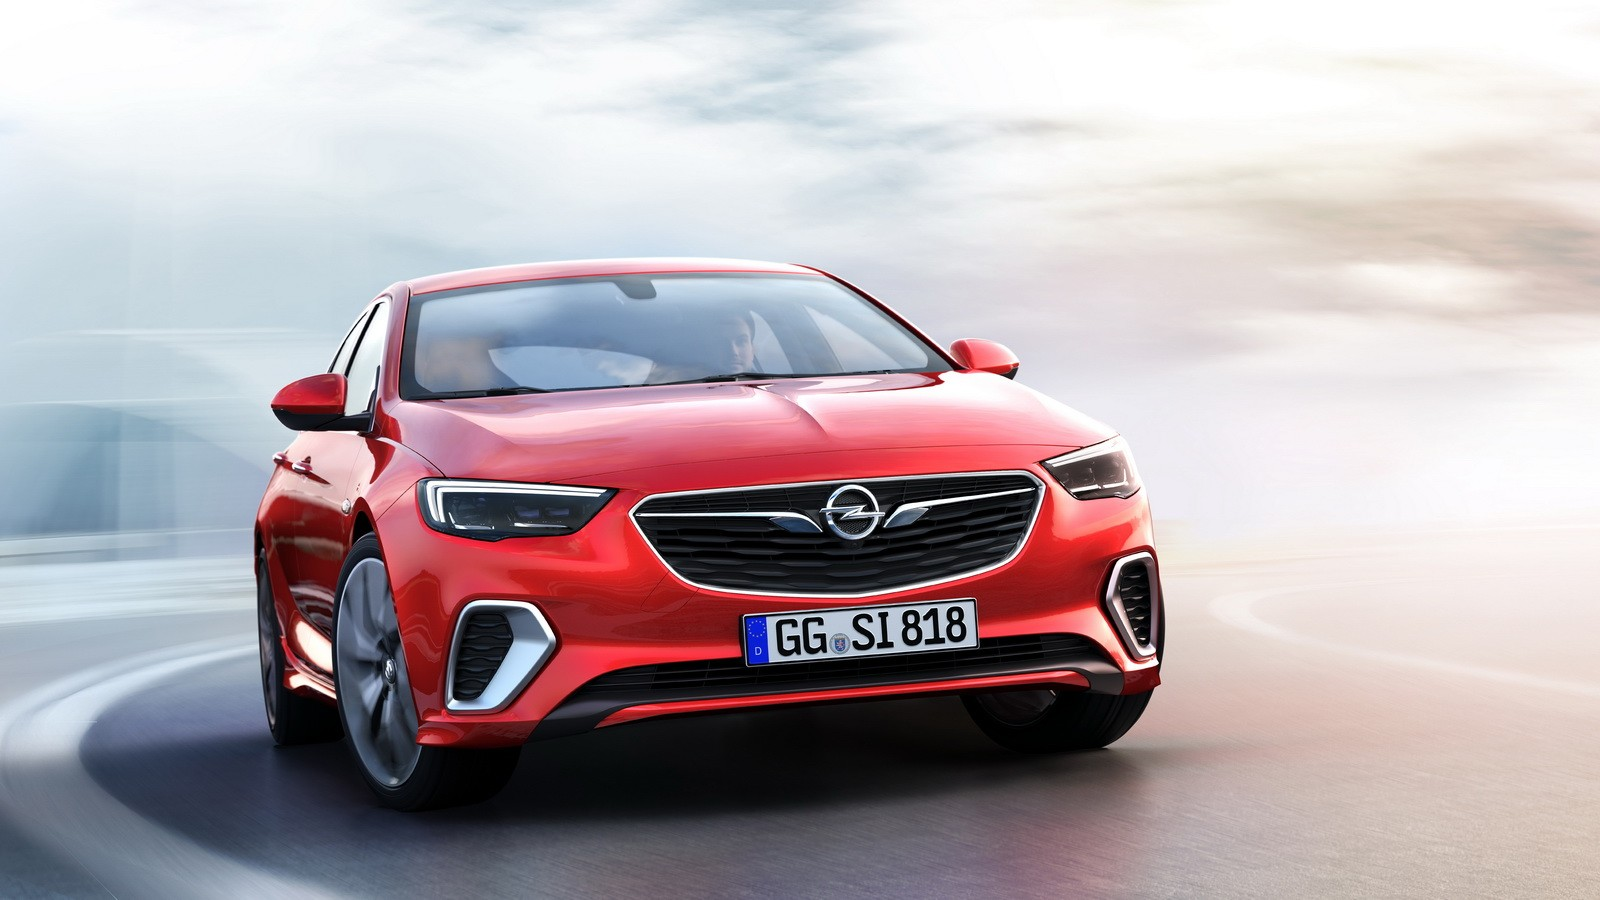 2018 opel insignia gsi is quicker than old insignia opc at. Black Bedroom Furniture Sets. Home Design Ideas